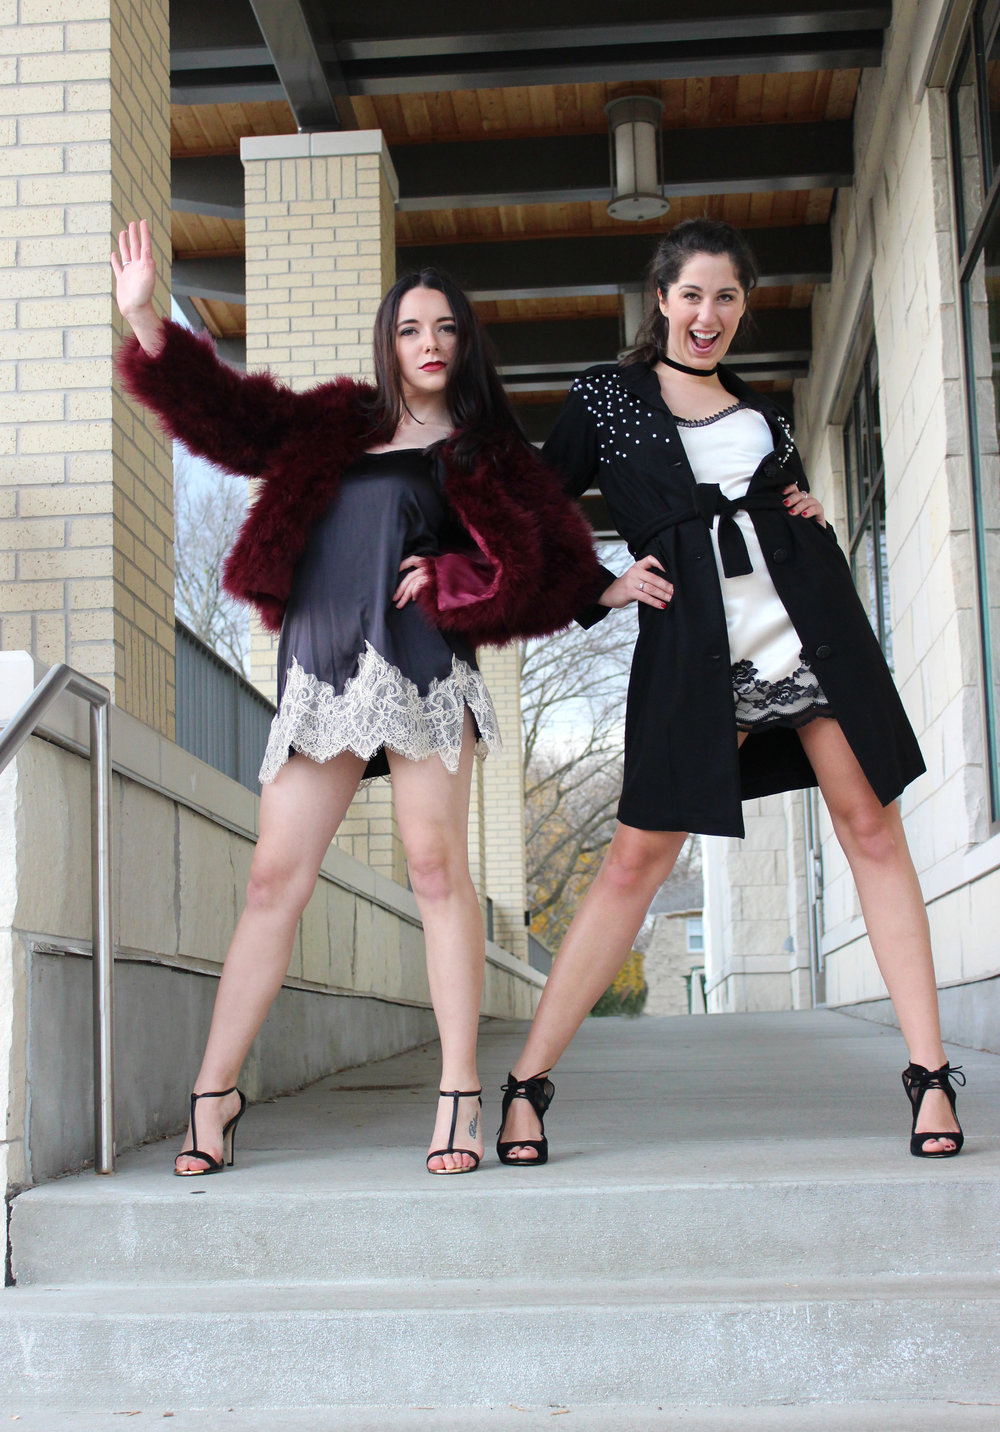 Courtney Pelot + Madalyn Manzeck photographed by  Cassie Sterwald  in Cedarburg, WI in 2016.   Slips + Black Coat Madalyn Joy Designs | Feather Coat Line + Dot | Madalyn's Black Heels Nine West | Courtney's Black Heels Call It Spring